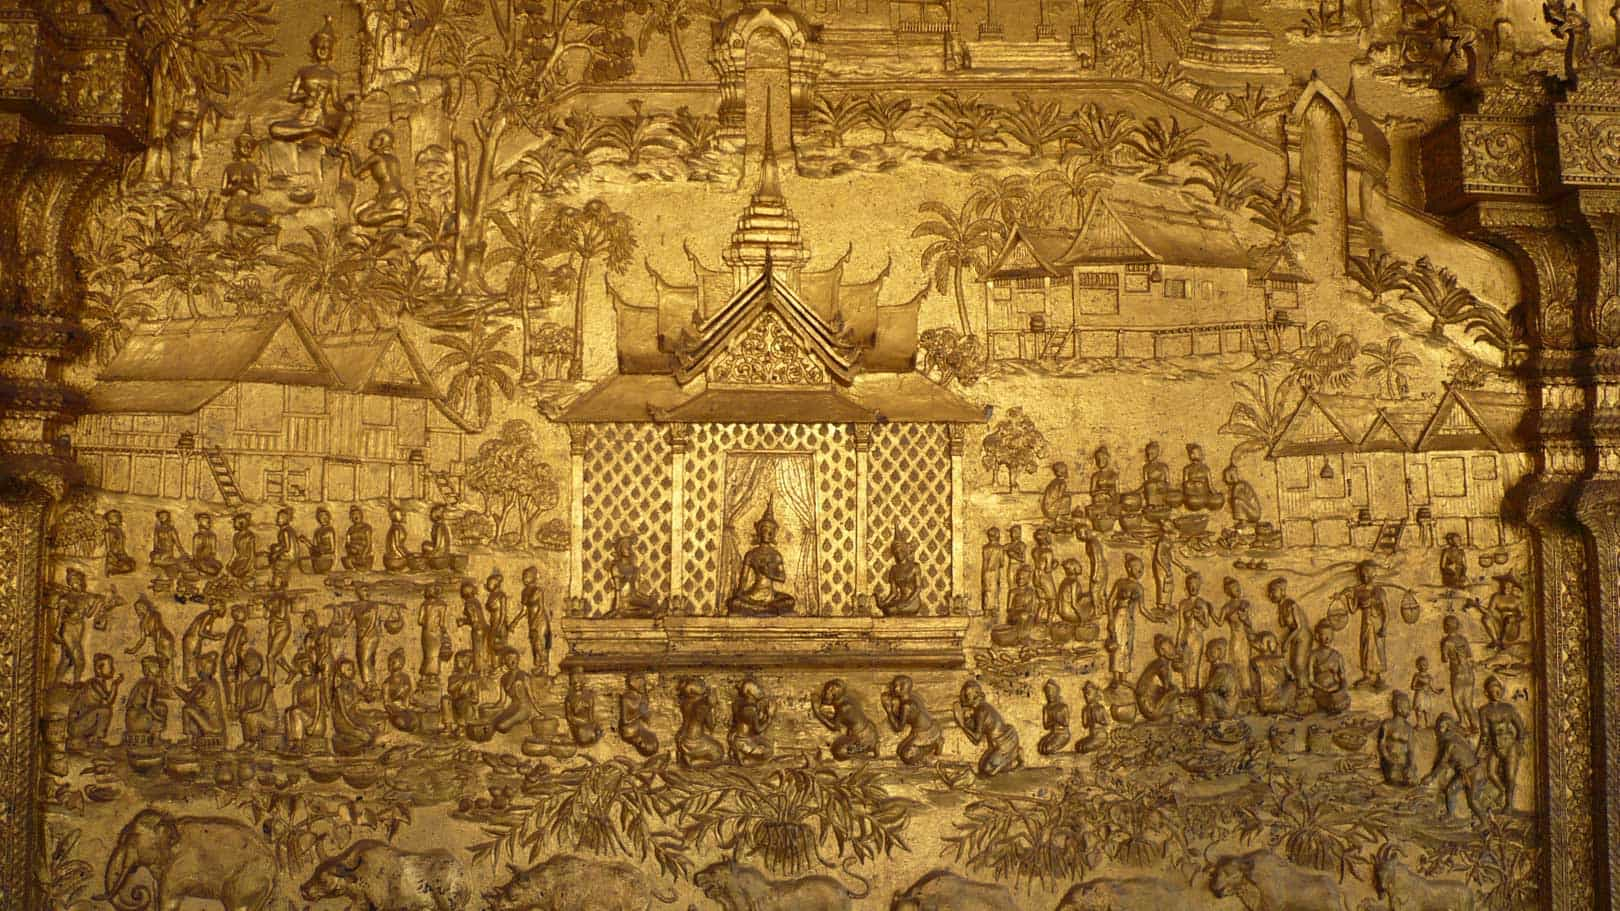 Luang Prabang - golden artpiece